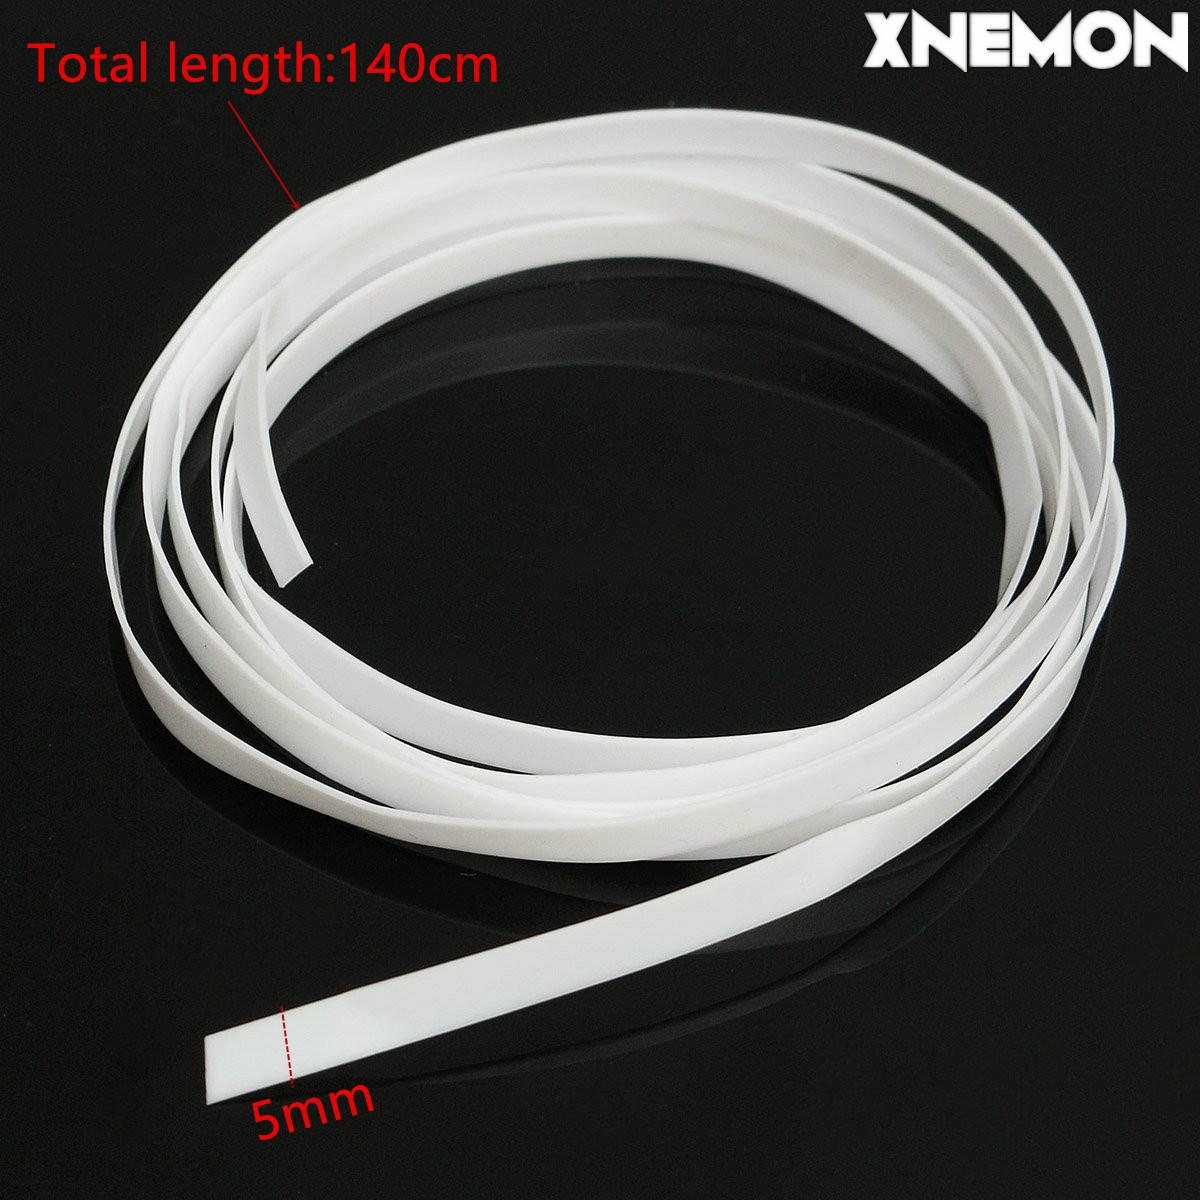 XNEMON 5 Mm White Plotter Blade Cutting Strip For Roland Cutting Vinyl Cutter For All 5mm Bead Cutting Plotter 140CM 1.4M 1400mm